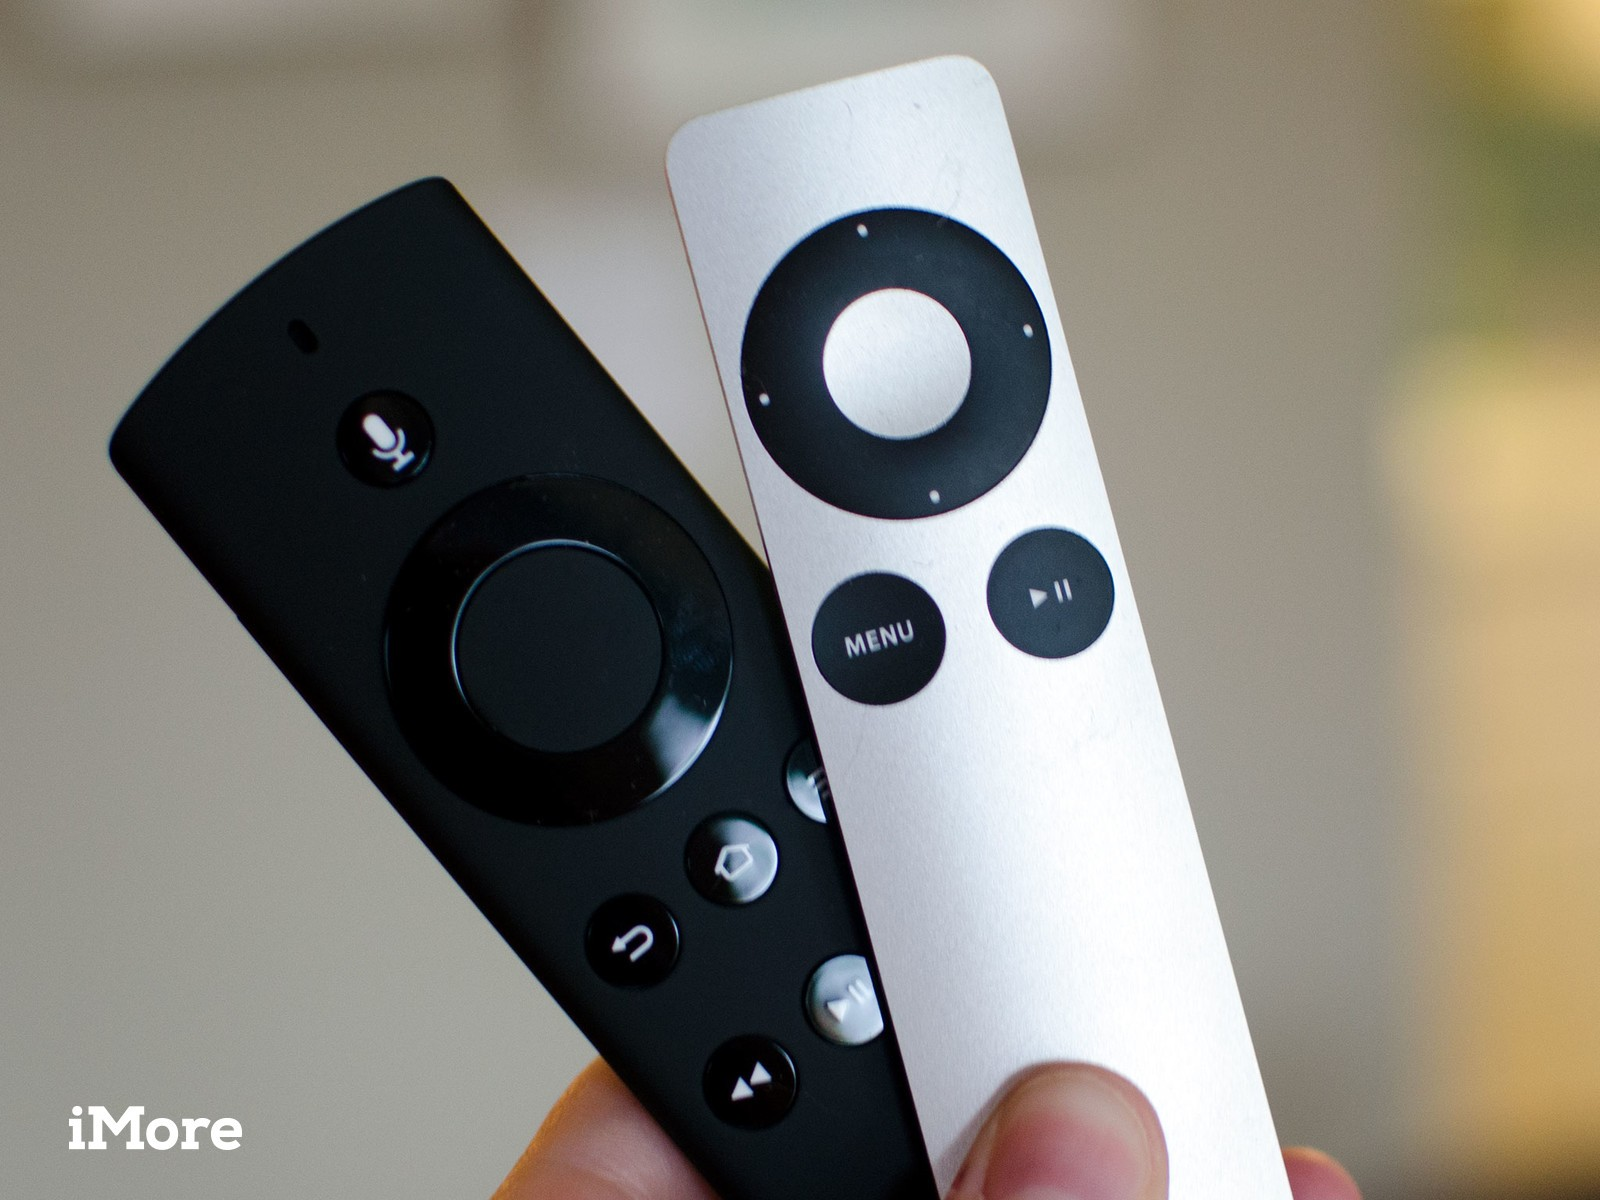 Apple TV vs. Amazon Fire TV: Which one should you buy?